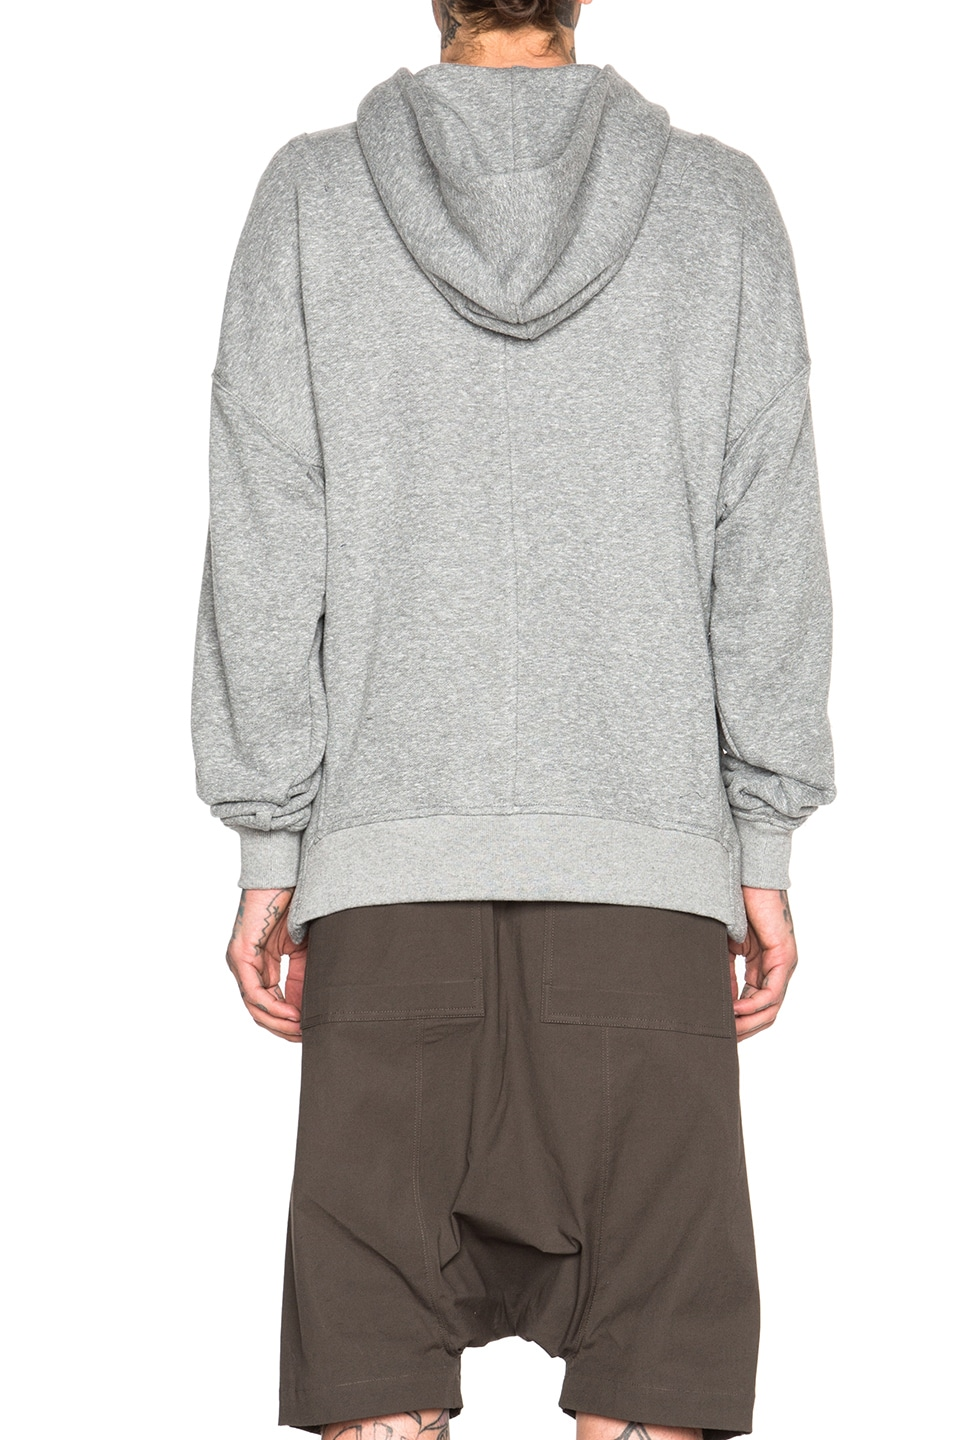 0debee132a1e Image 4 of Fear of God Everyday Hoodie in Heather Grey